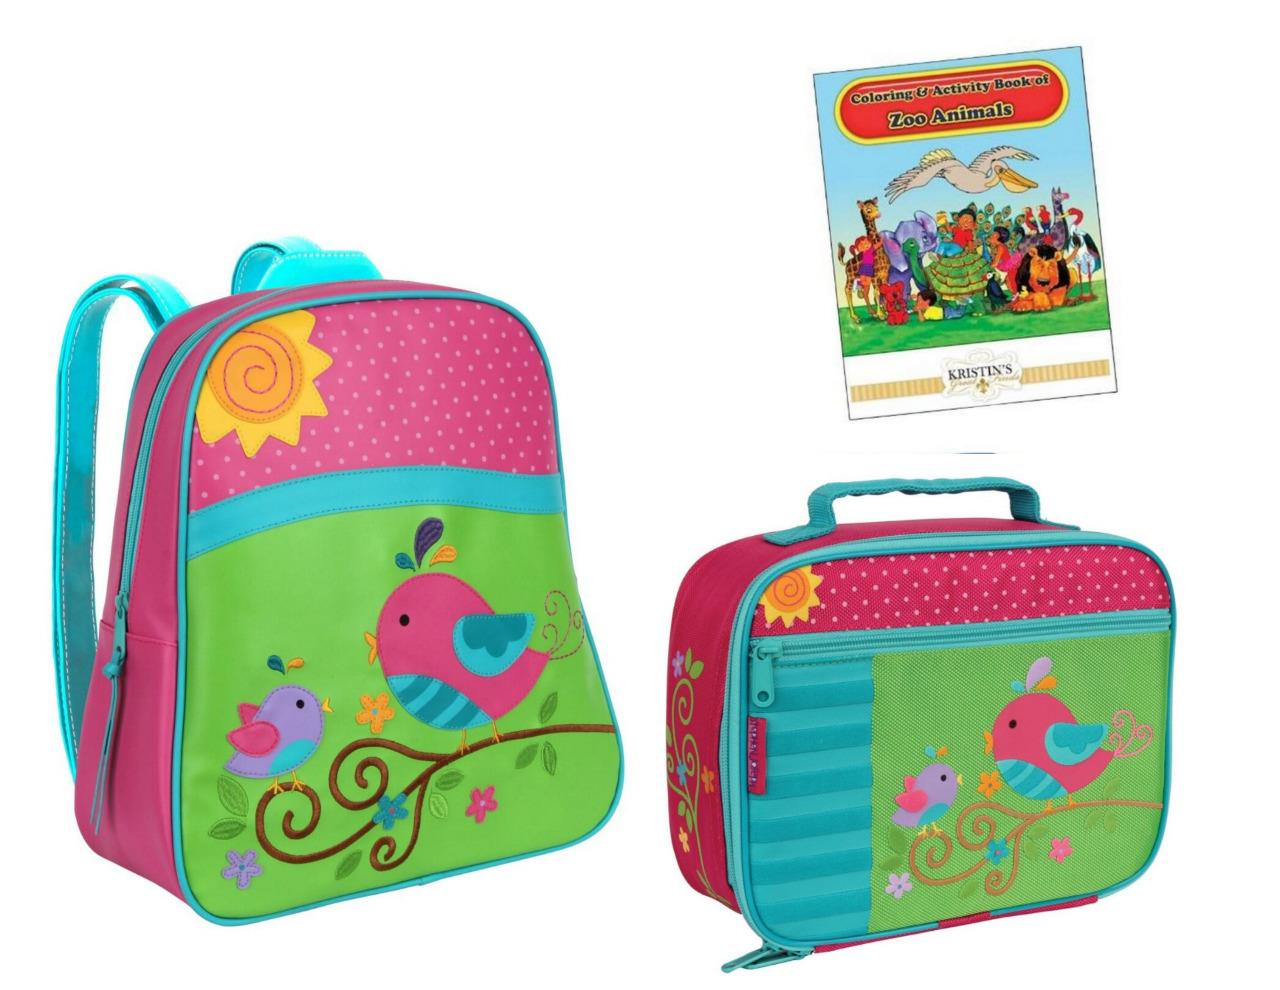 stephen joseph gogo go backpack lunch box set kids toddler school preschool bag ebay. Black Bedroom Furniture Sets. Home Design Ideas